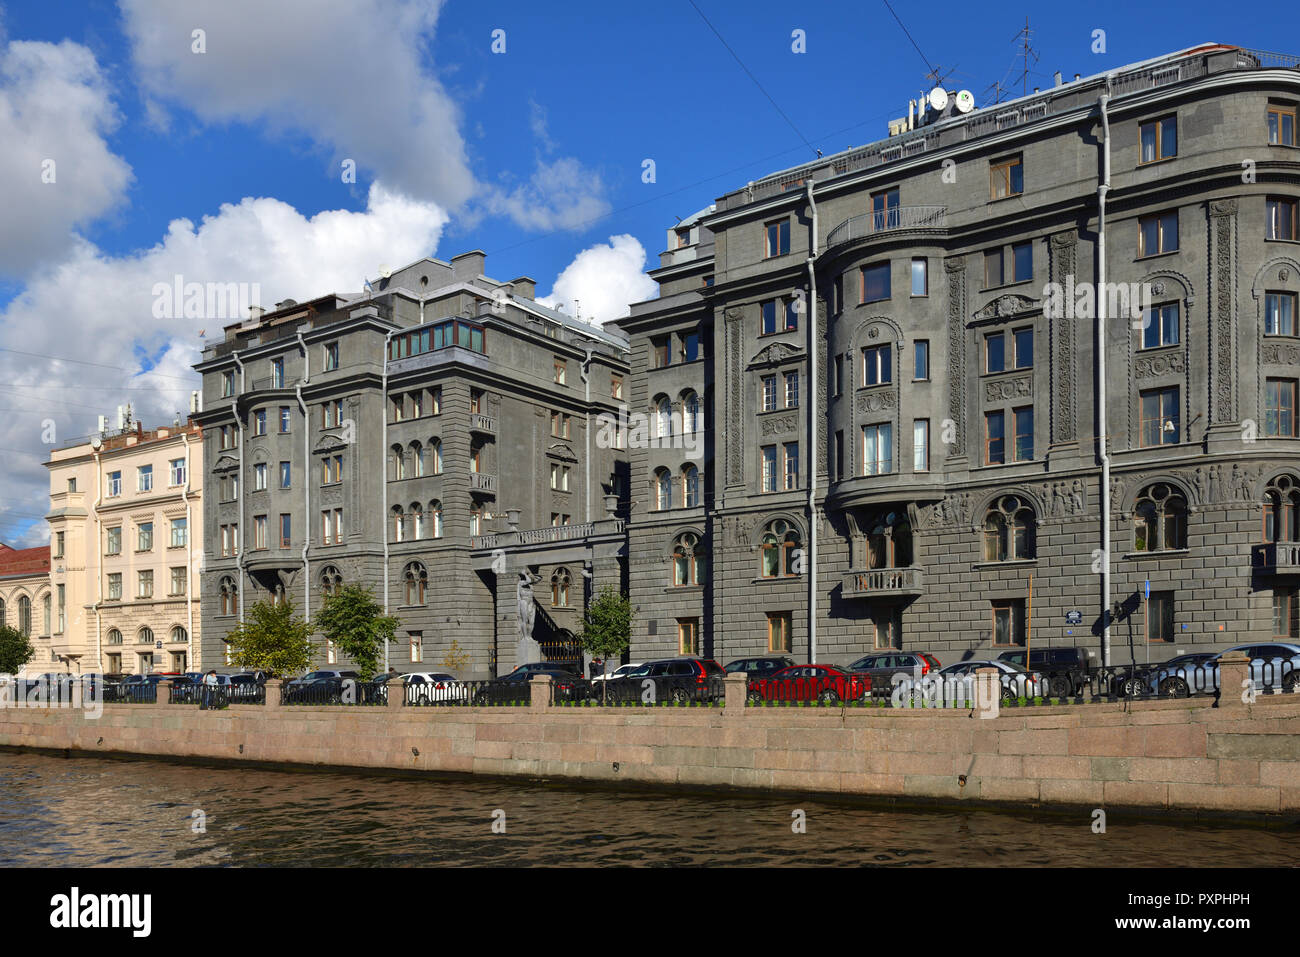 Profitable House Vege built by architect Ovsyannikov in early 20th c. Kryukov Canal Embankment - Stock Image